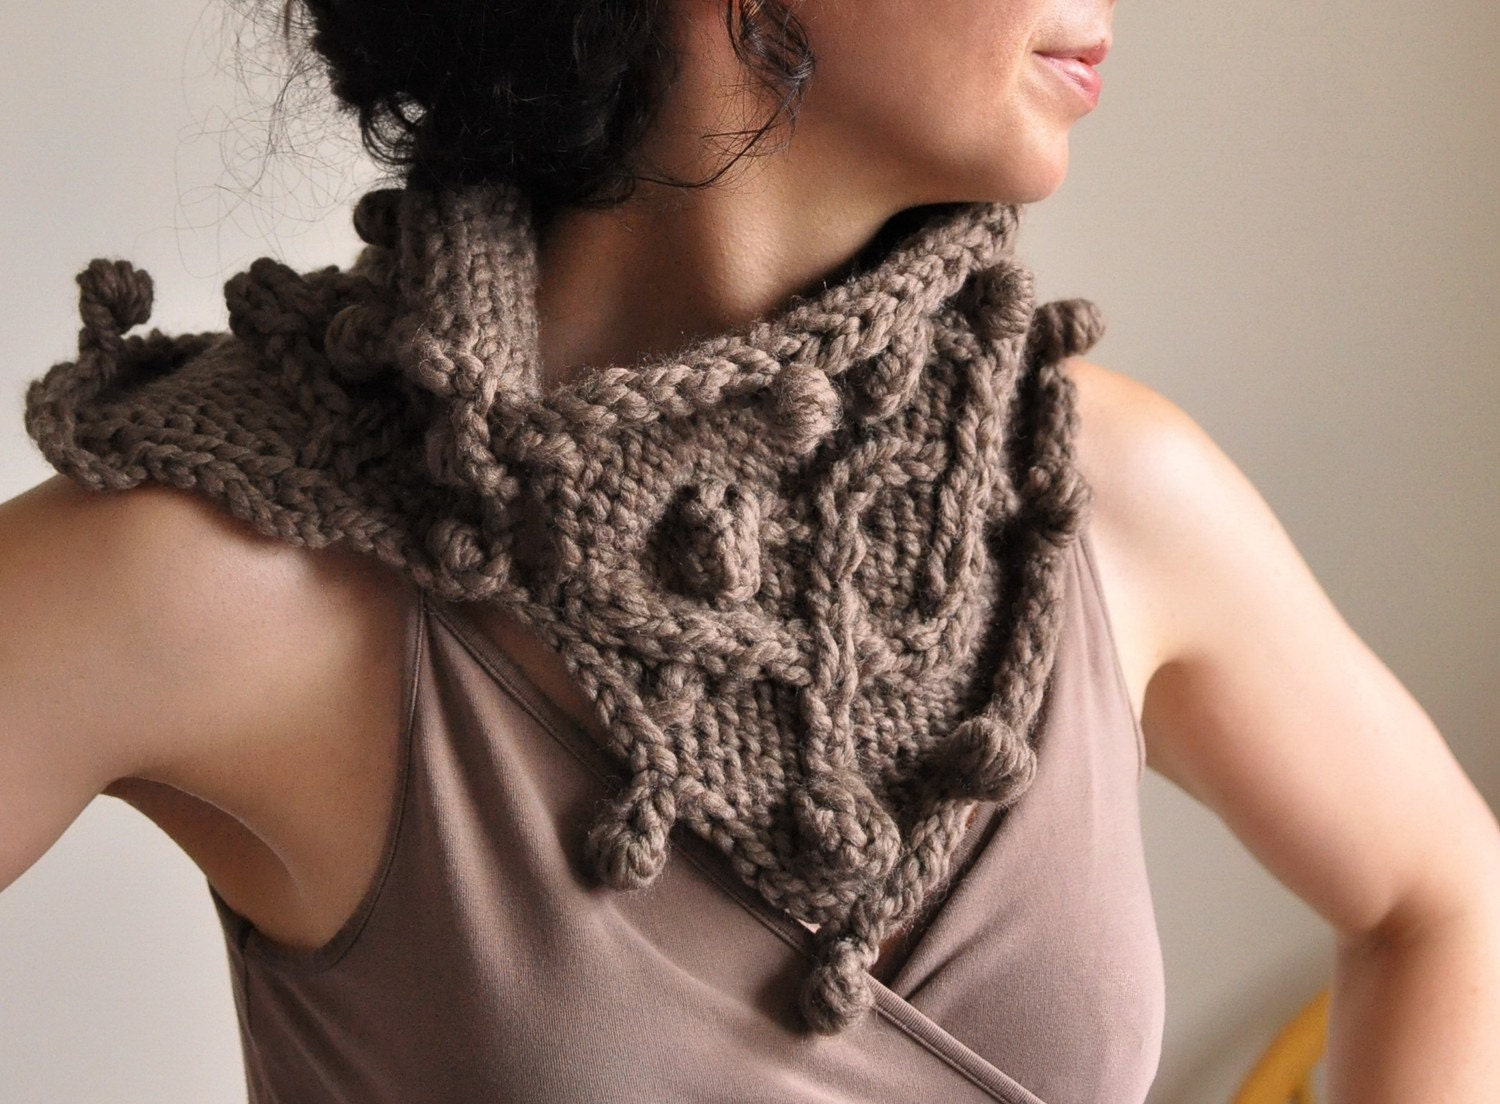 Heard It Through The Grapevine - superchunky designer handknit scarf / wrap / neckwarmer / cowl in taupe MADE TO ORDER in 16 colors